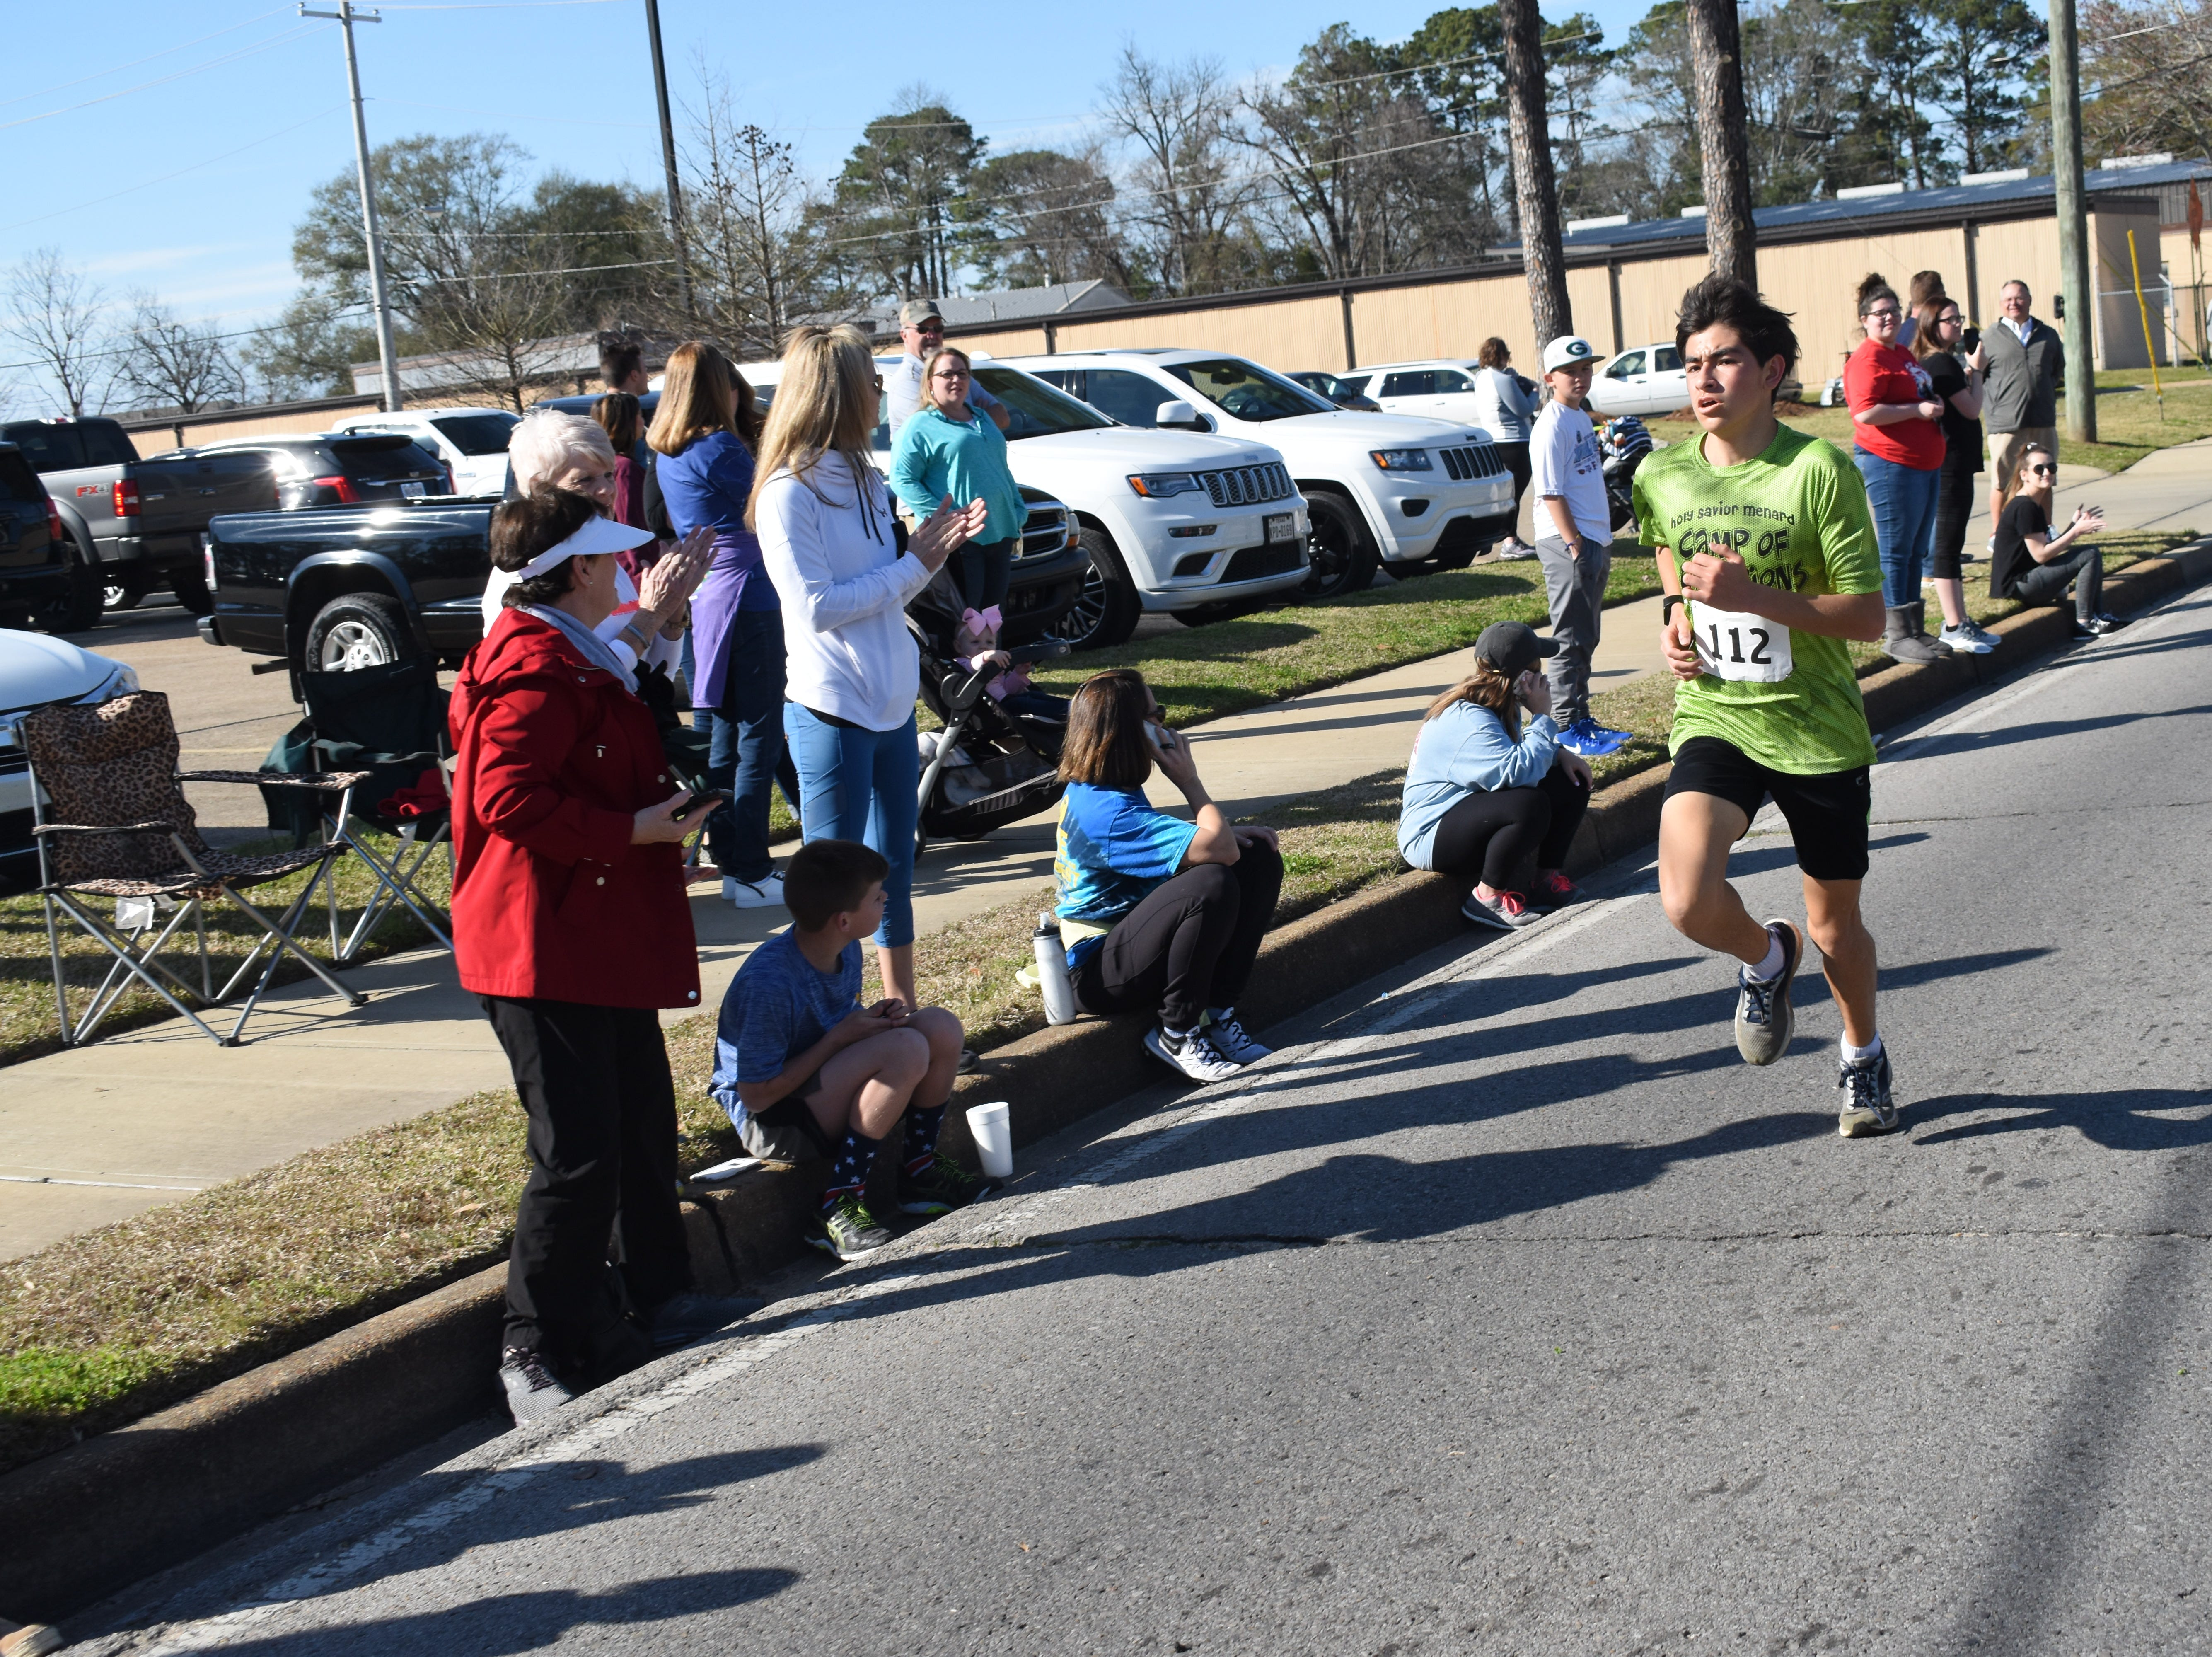 Cyrus Cox, 16, came in second in the 19th annual Spirits 5K with a time of 17:07.3. Over 212 runners participated in the 19th annual Spirits 5K and 1-mile Fun Run benefitting the Manna House Saturday, Jan. 26, 2019. About 75 runners participated in a new event held this year - the Beer Run. Runners had to drink four beers and sprint to the finish line. Proceeds from the runs benefit the Manna House which serves free meals year round to anyone who needs a meal regardless of income. Over 200 people a day are fed. The Manna House opened in 1990 and was the vision of Father Gerad Foley.